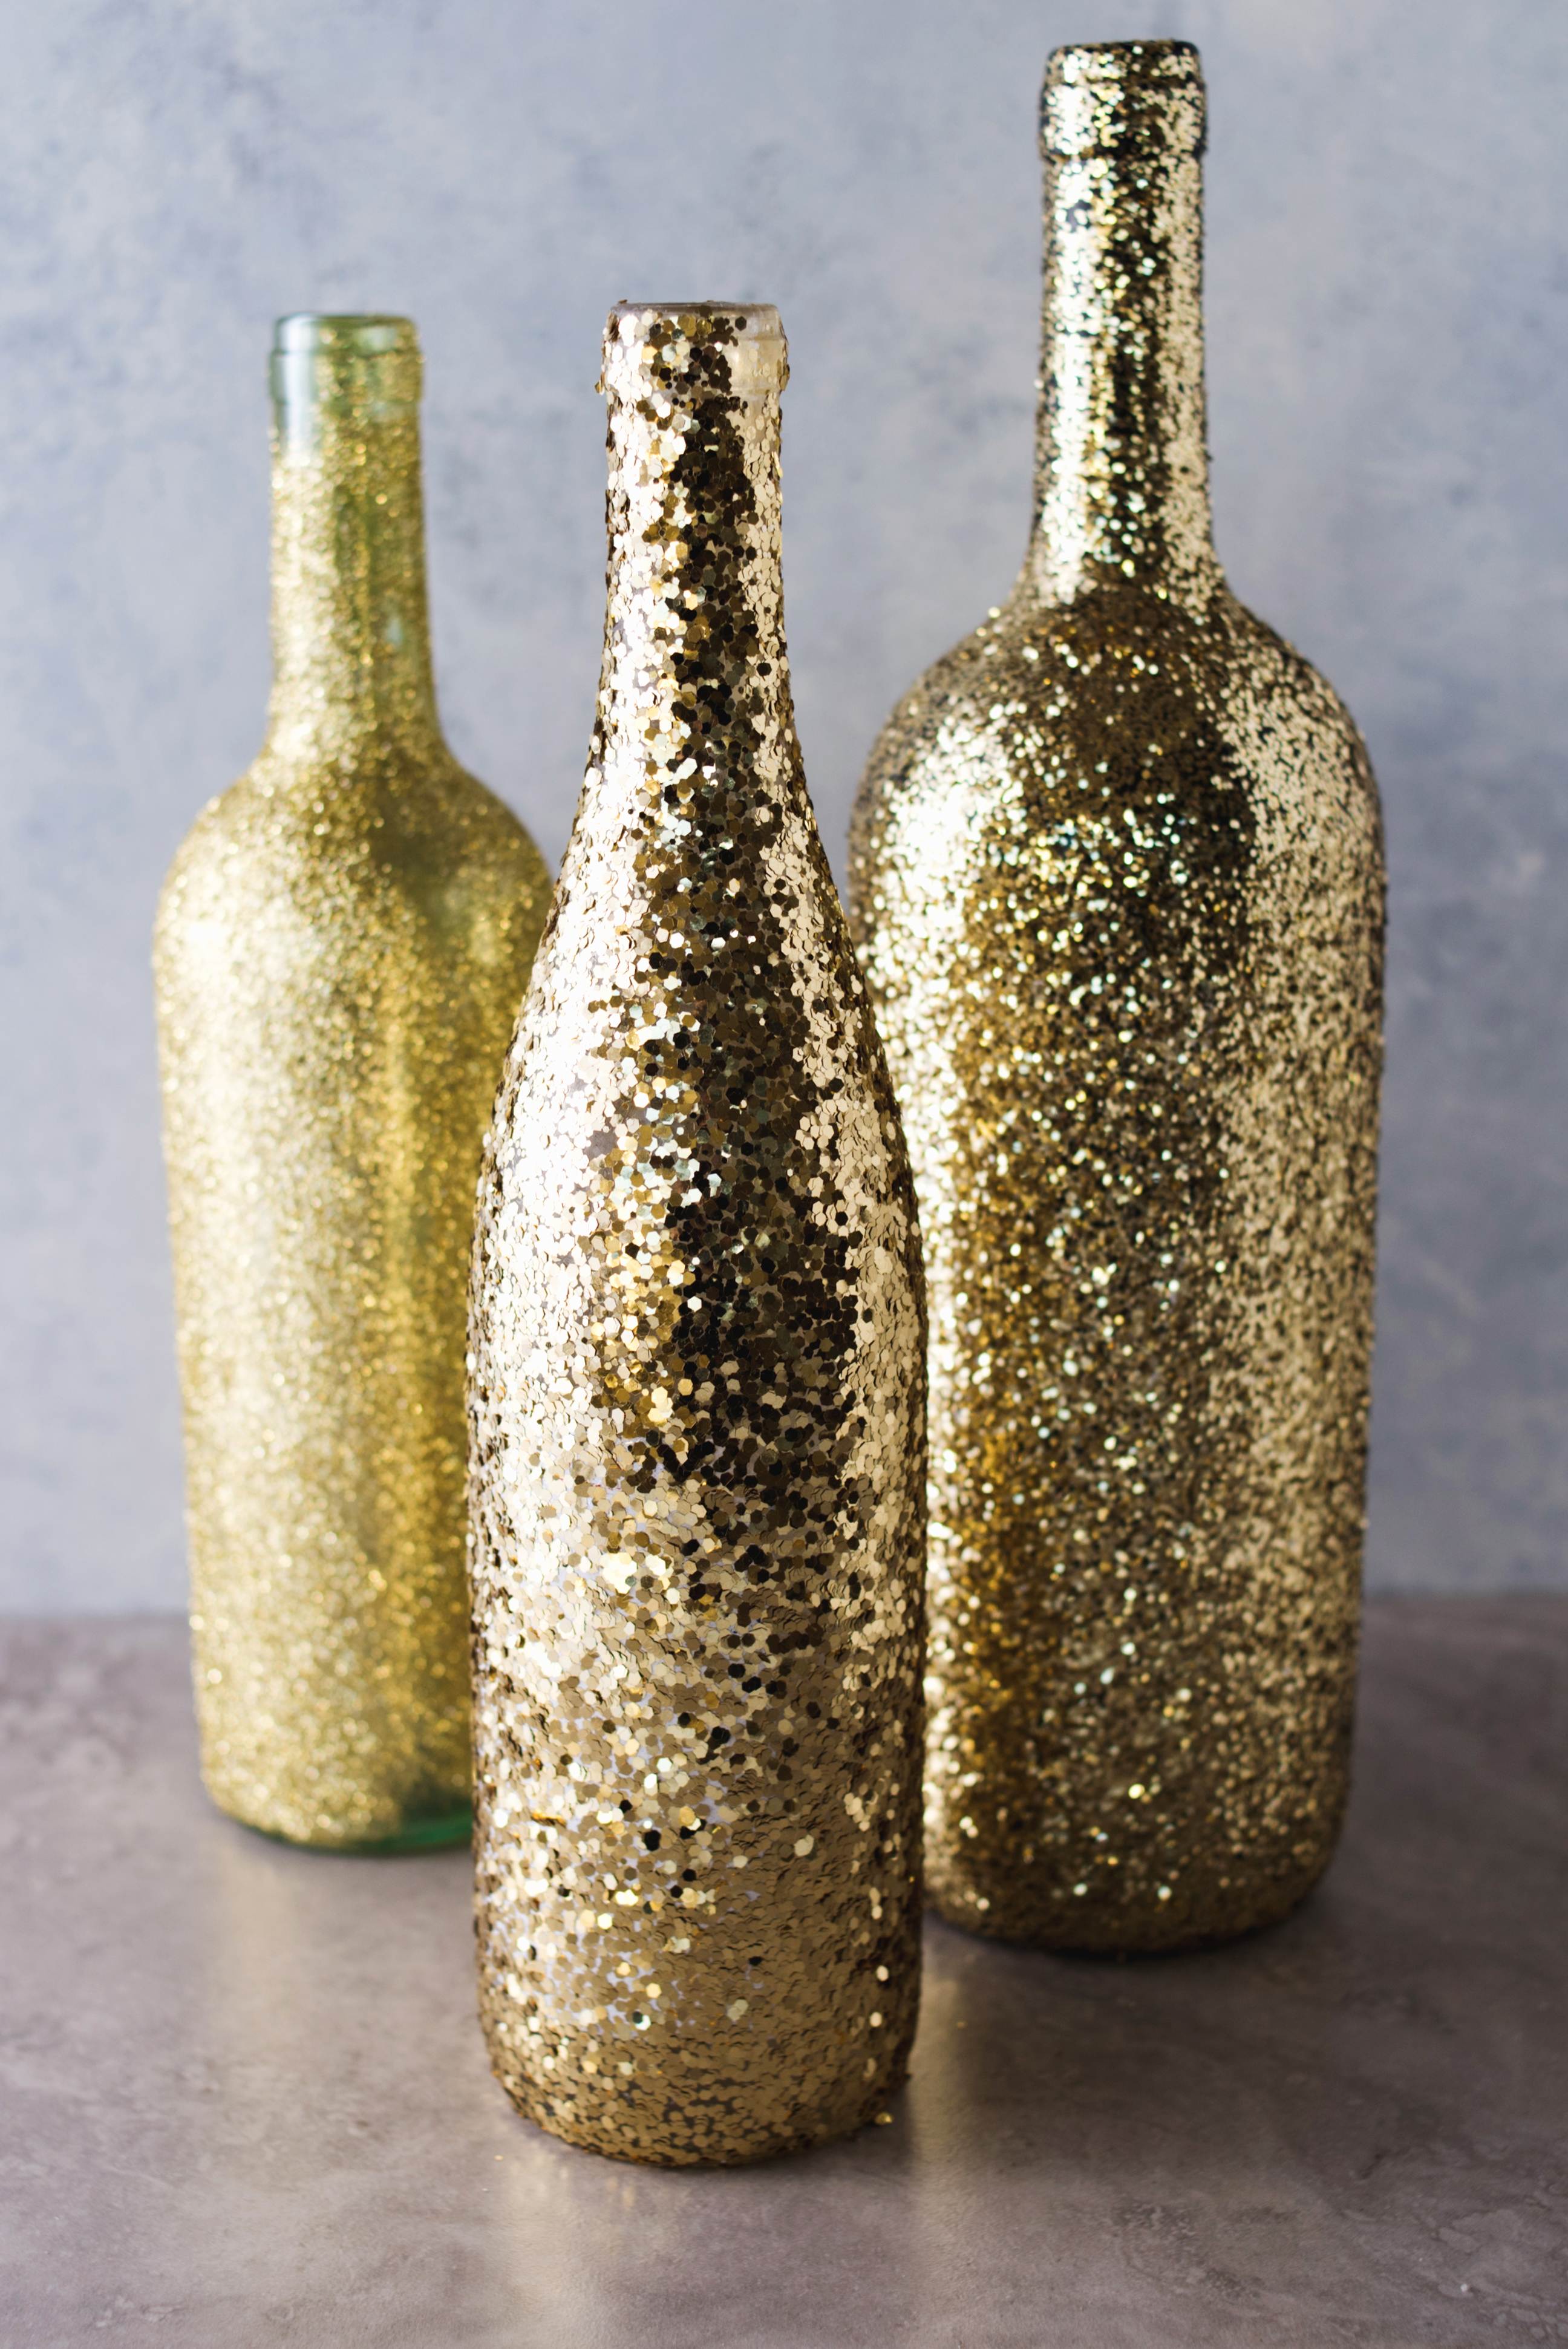 Diy wine bottle glitter vases a little craft in your day for How to decorate a bottle with glitter